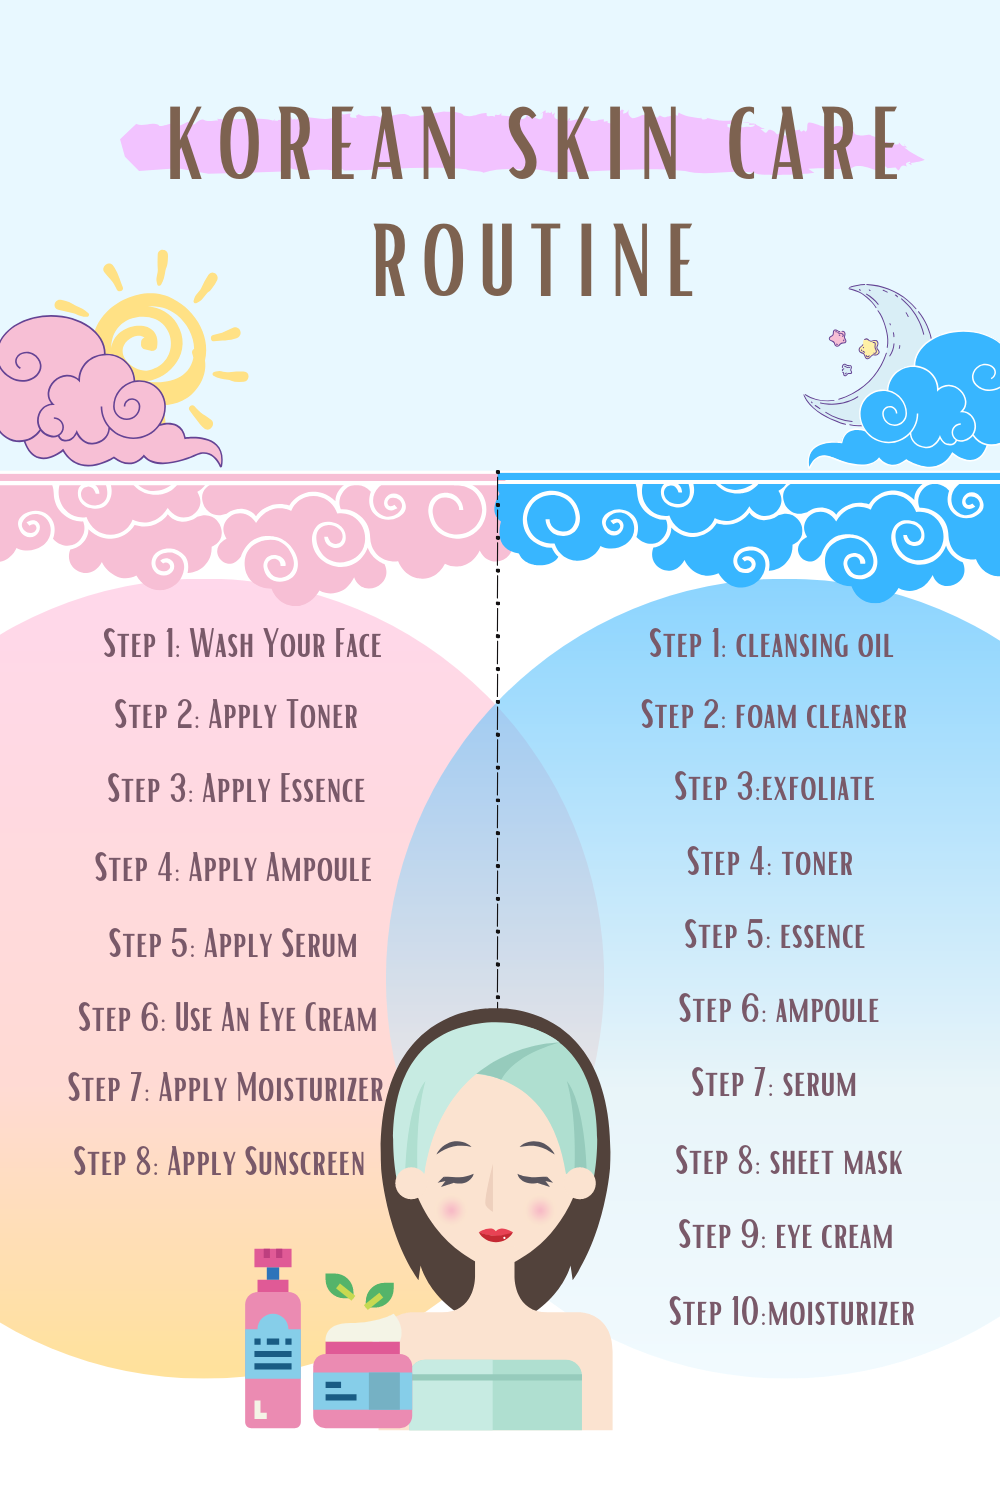 Korean Skin Care Routine Day And Night In 2020 Korean Skin Care Routine Night Night Skin Care Routine Skin Care Routine Steps